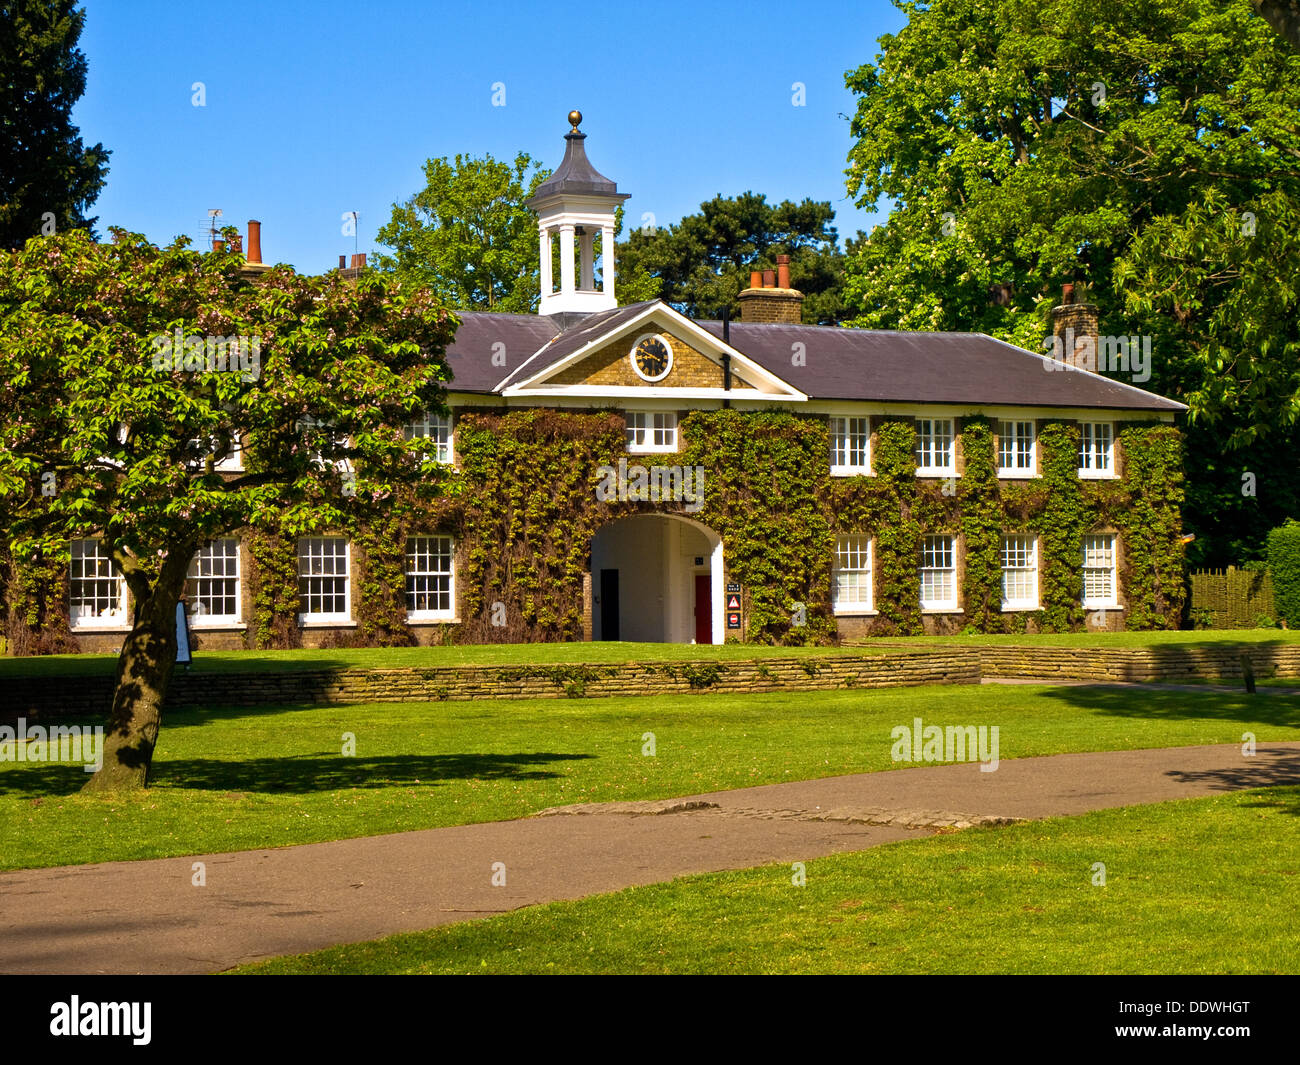 Old coach house, Marble Hill Park, Twickenham, London, England - Stock Image